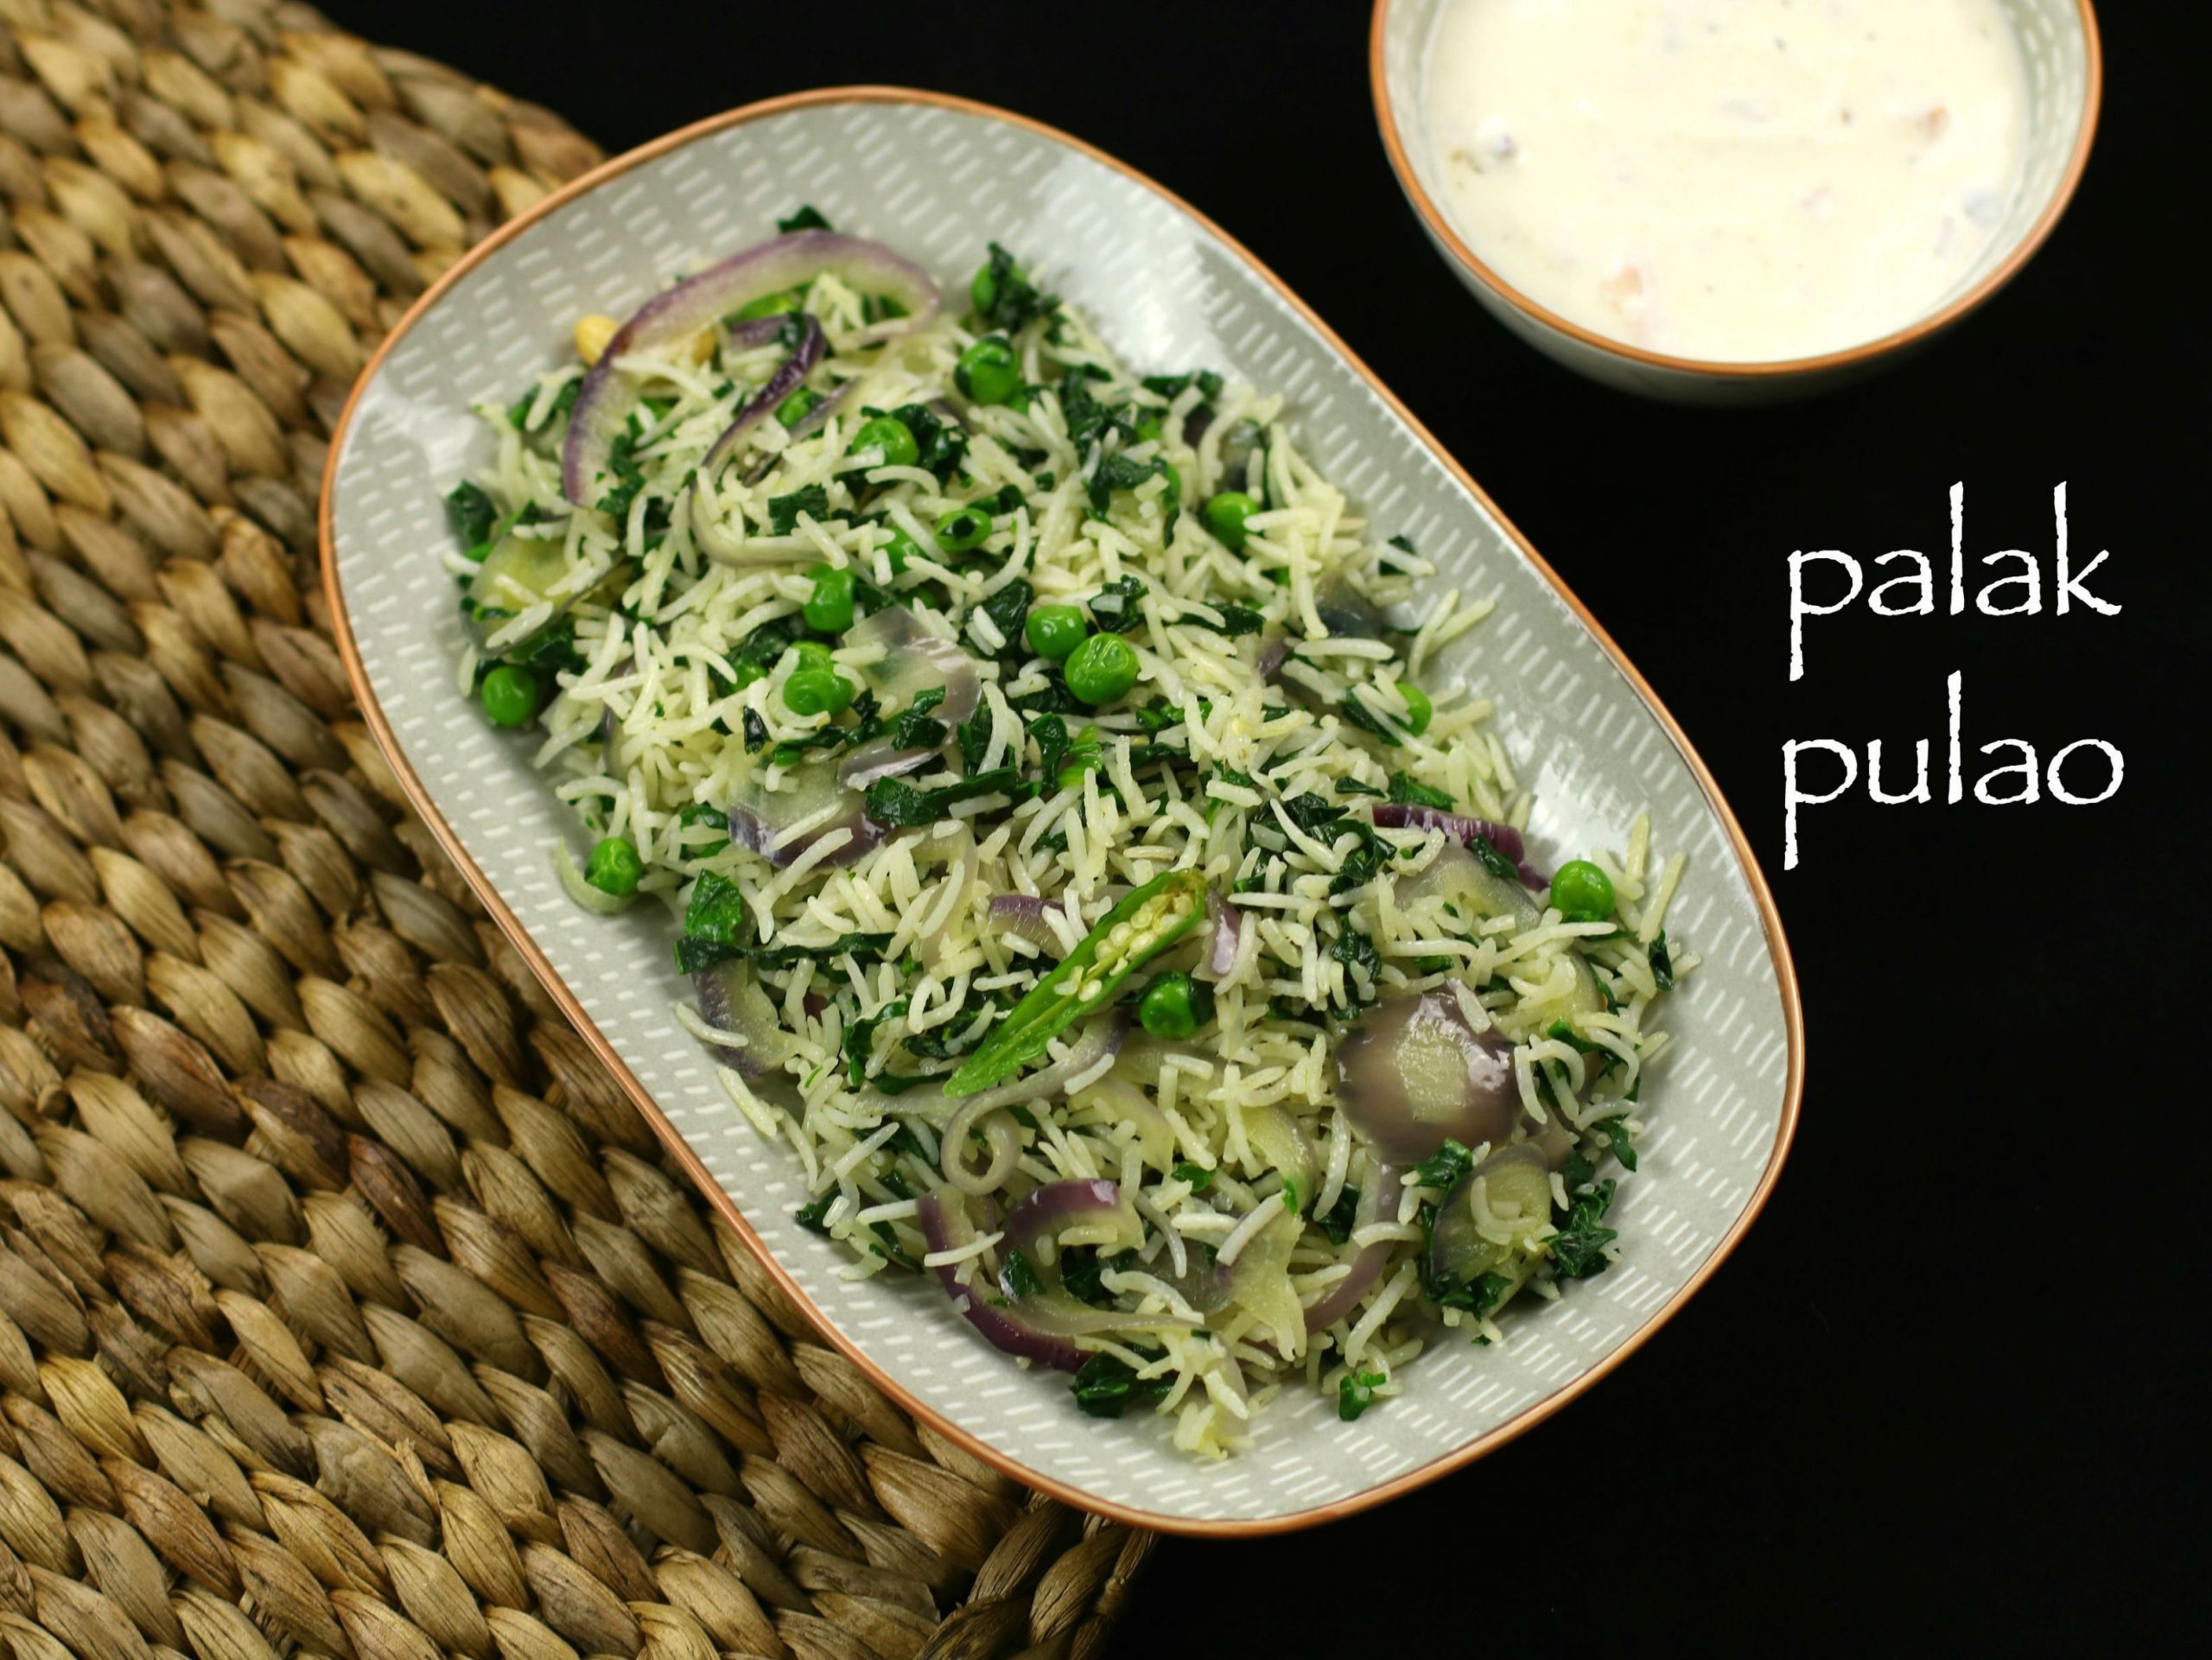 palak pulao recipe | spinach pulao recipe | spinach rice recipe ..